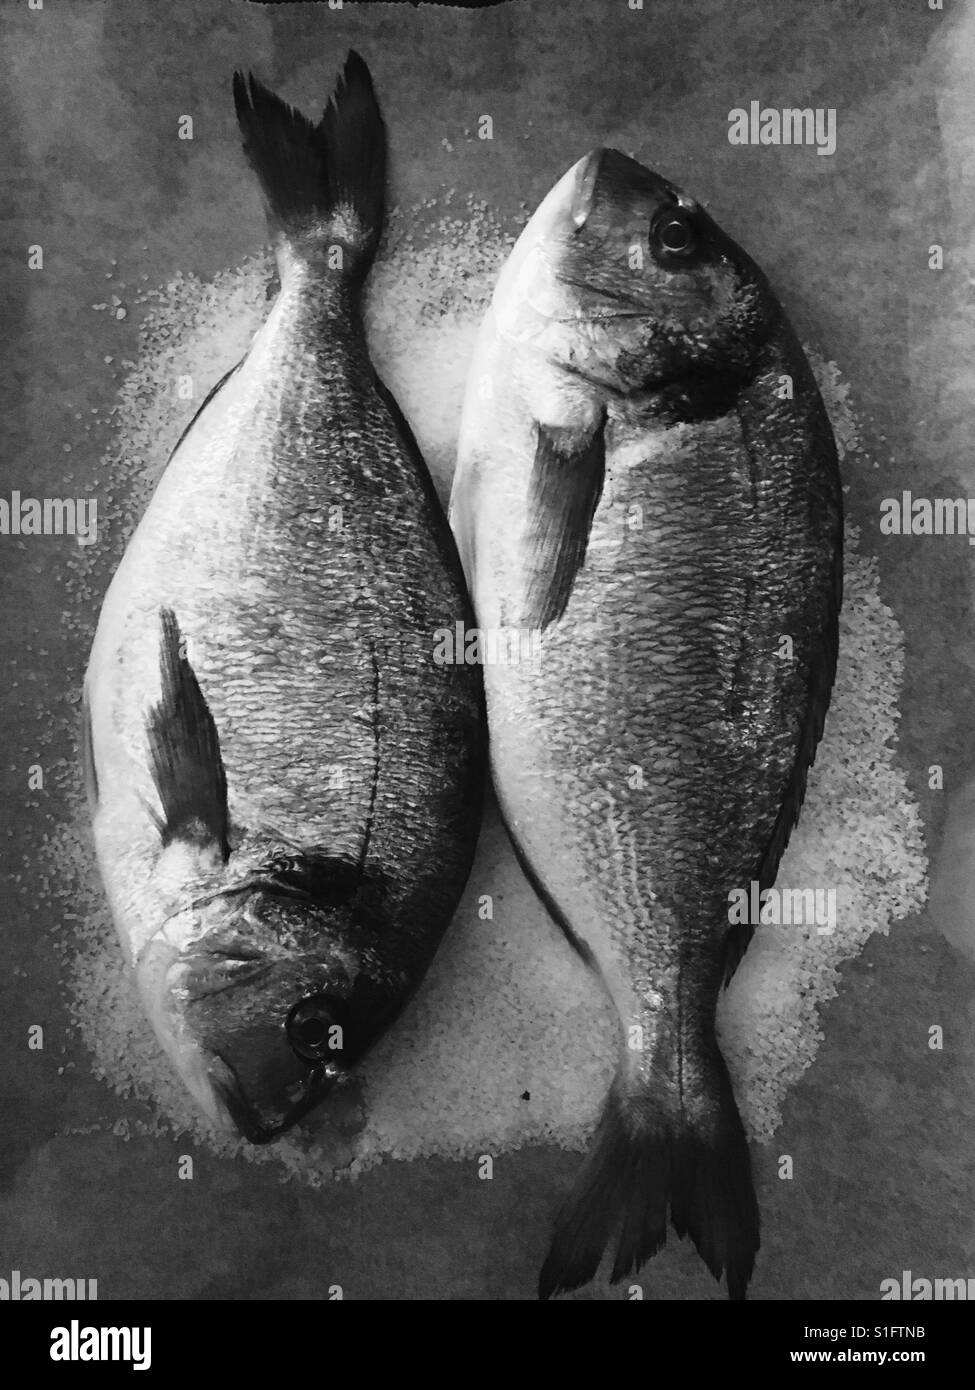 Sea Bream in Salt - Stock Image